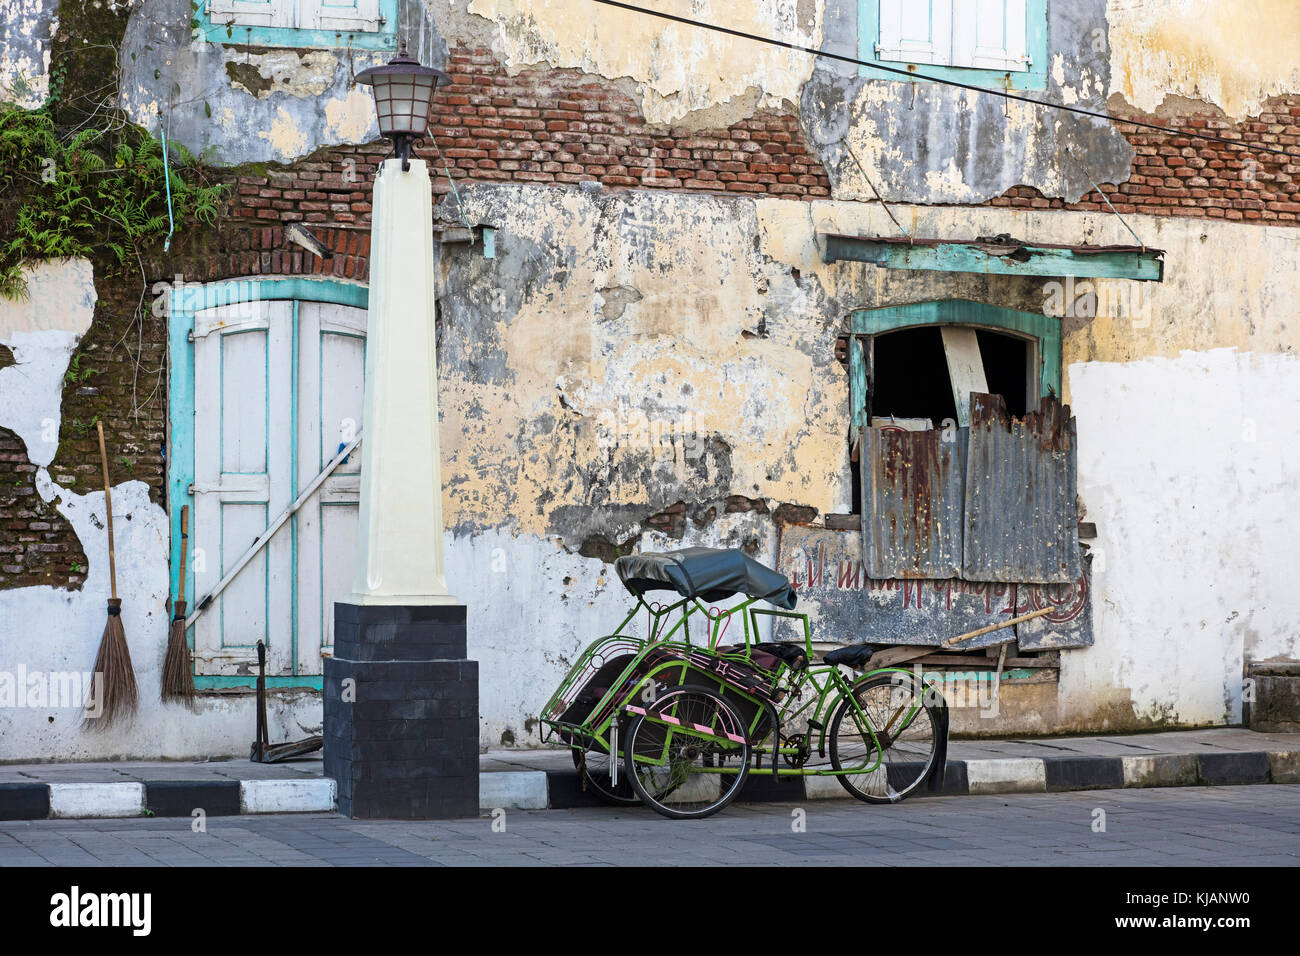 Cycle rickshaw / becak in the old town Oudstad of Semarang, Central Java, Indonesia - Stock Image